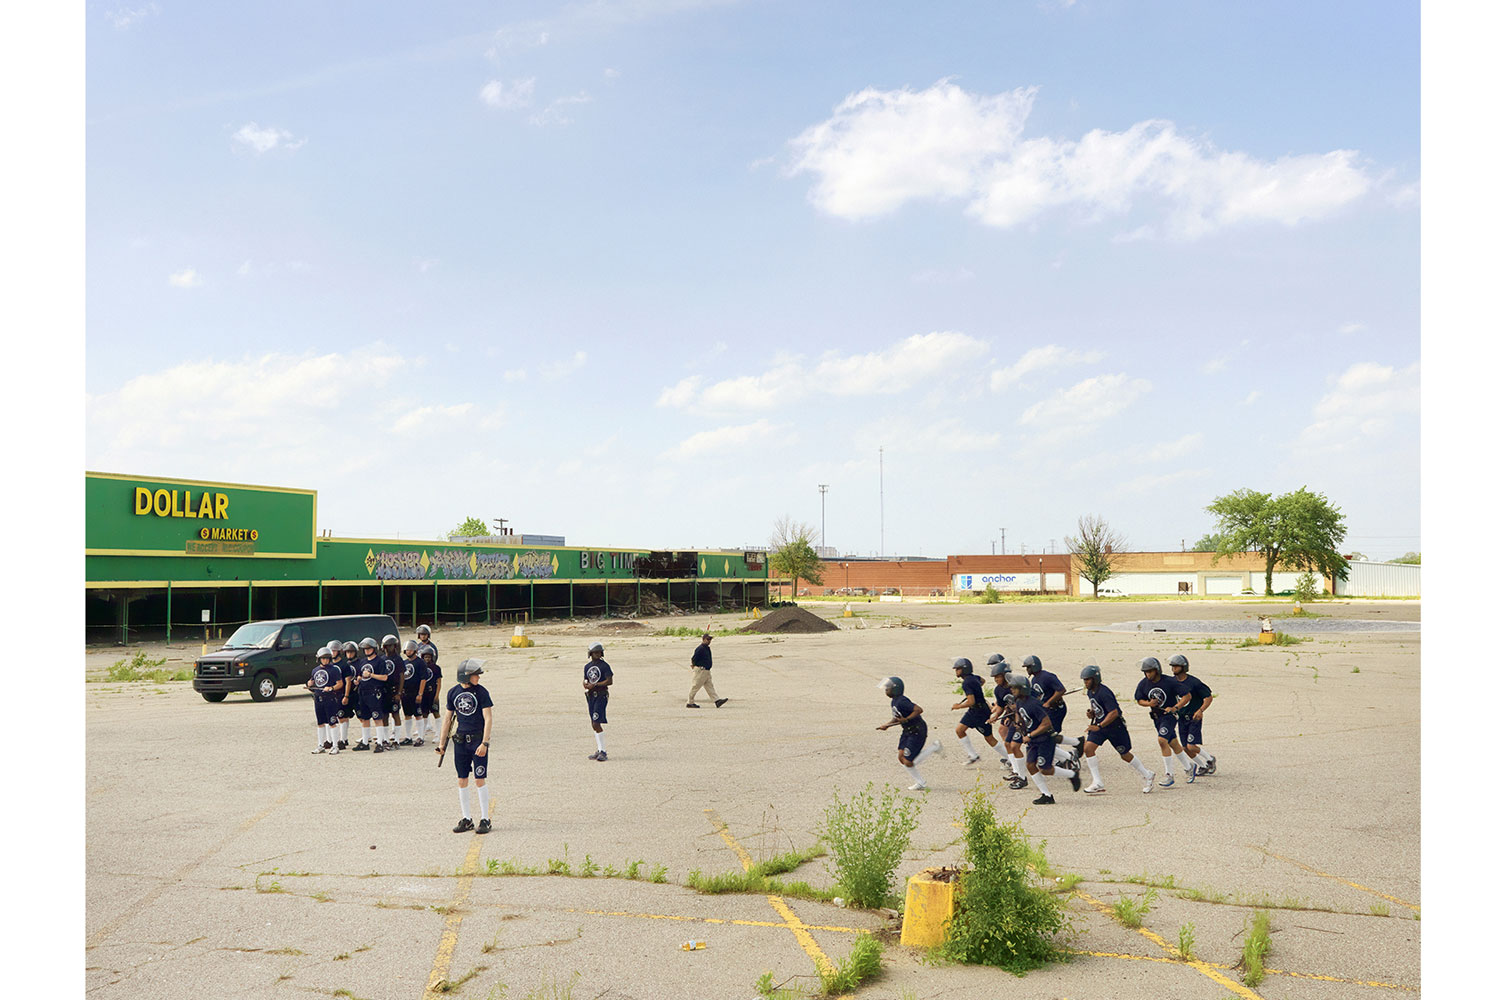 Police Cadet Riot Control Training, Northeast Side, Detroit, 2011                                                              The Detroit Police Academy will often train cadets in open public spaces in order to show local residents that their tax dollars are going to good use and to promote better public relations.